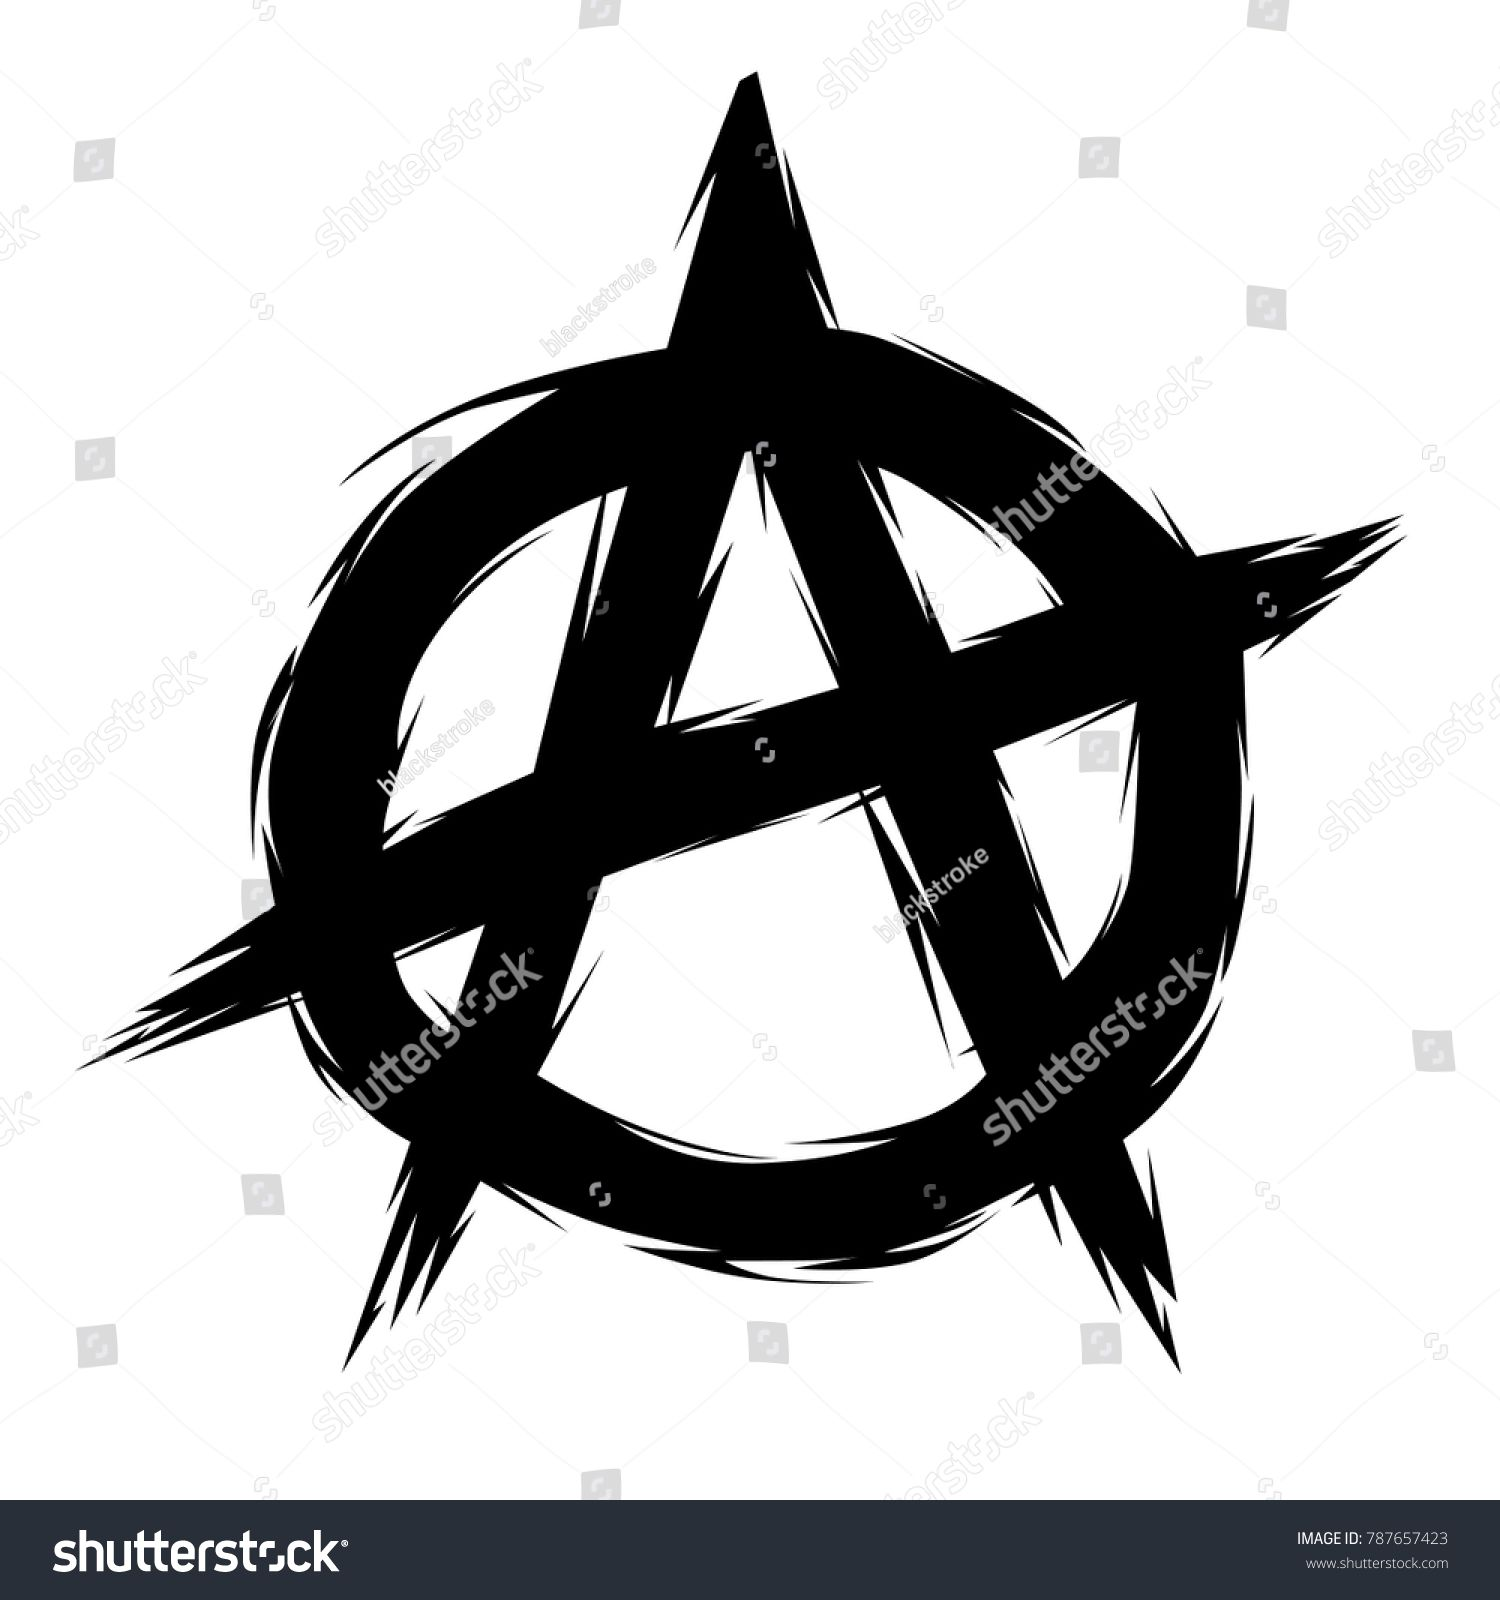 Anarchy Symbol Vector File Anarchy Symbol Sons Of Anarchy Tattoos Old Style Tattoos